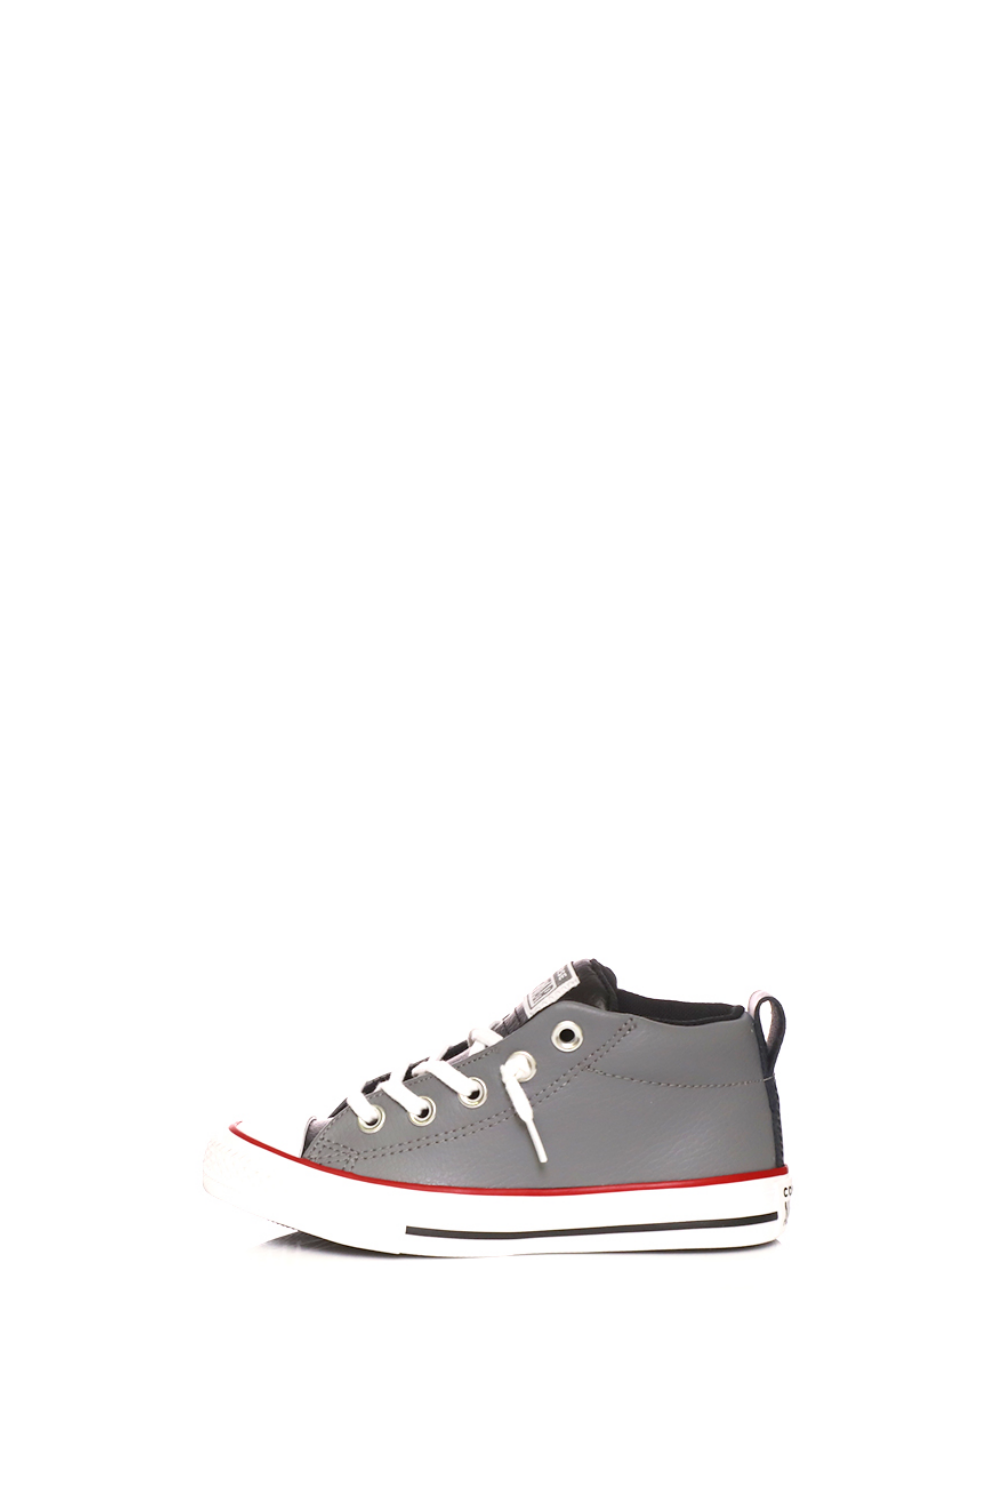 CONVERSE – Παιδικά ψηλά sneakers CONVERSE Chuck Taylor All Star Street γκρι